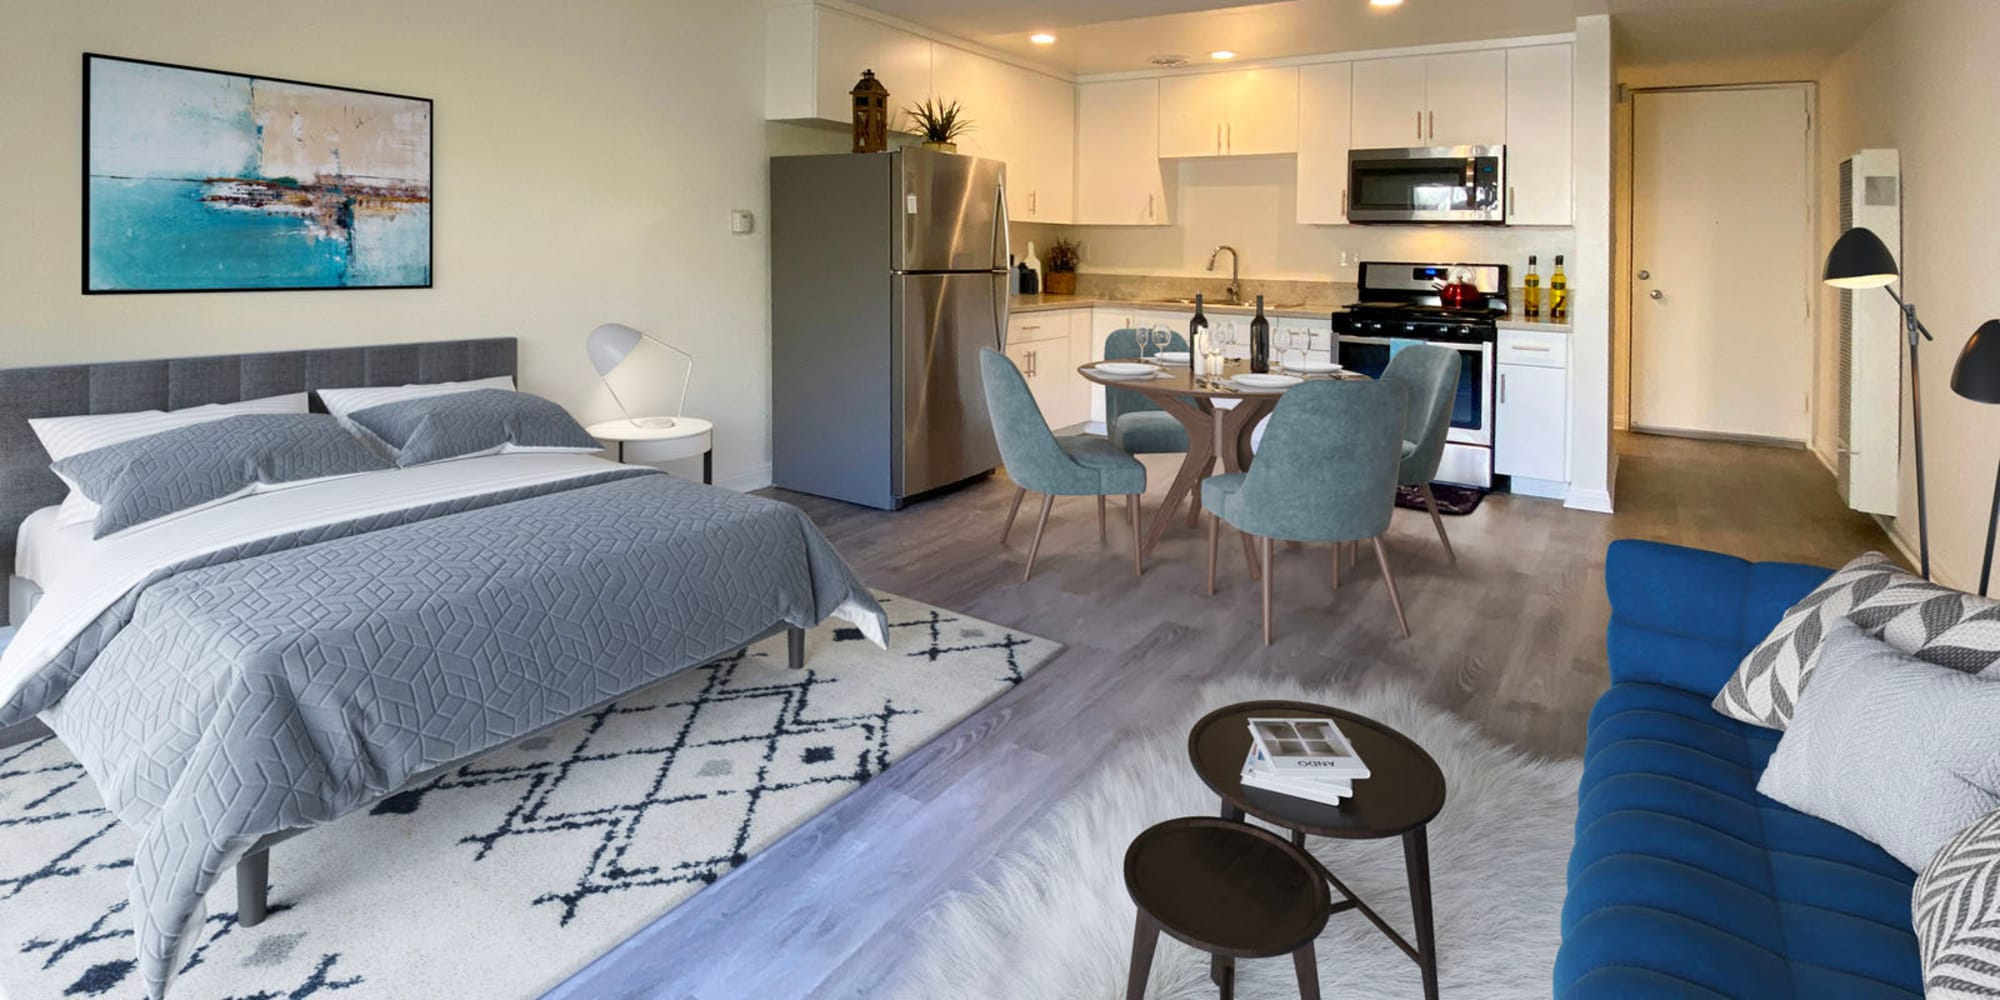 Well-furnished studio apartment with wood-style flooring at Mediterranean Village in West Hollywood, California